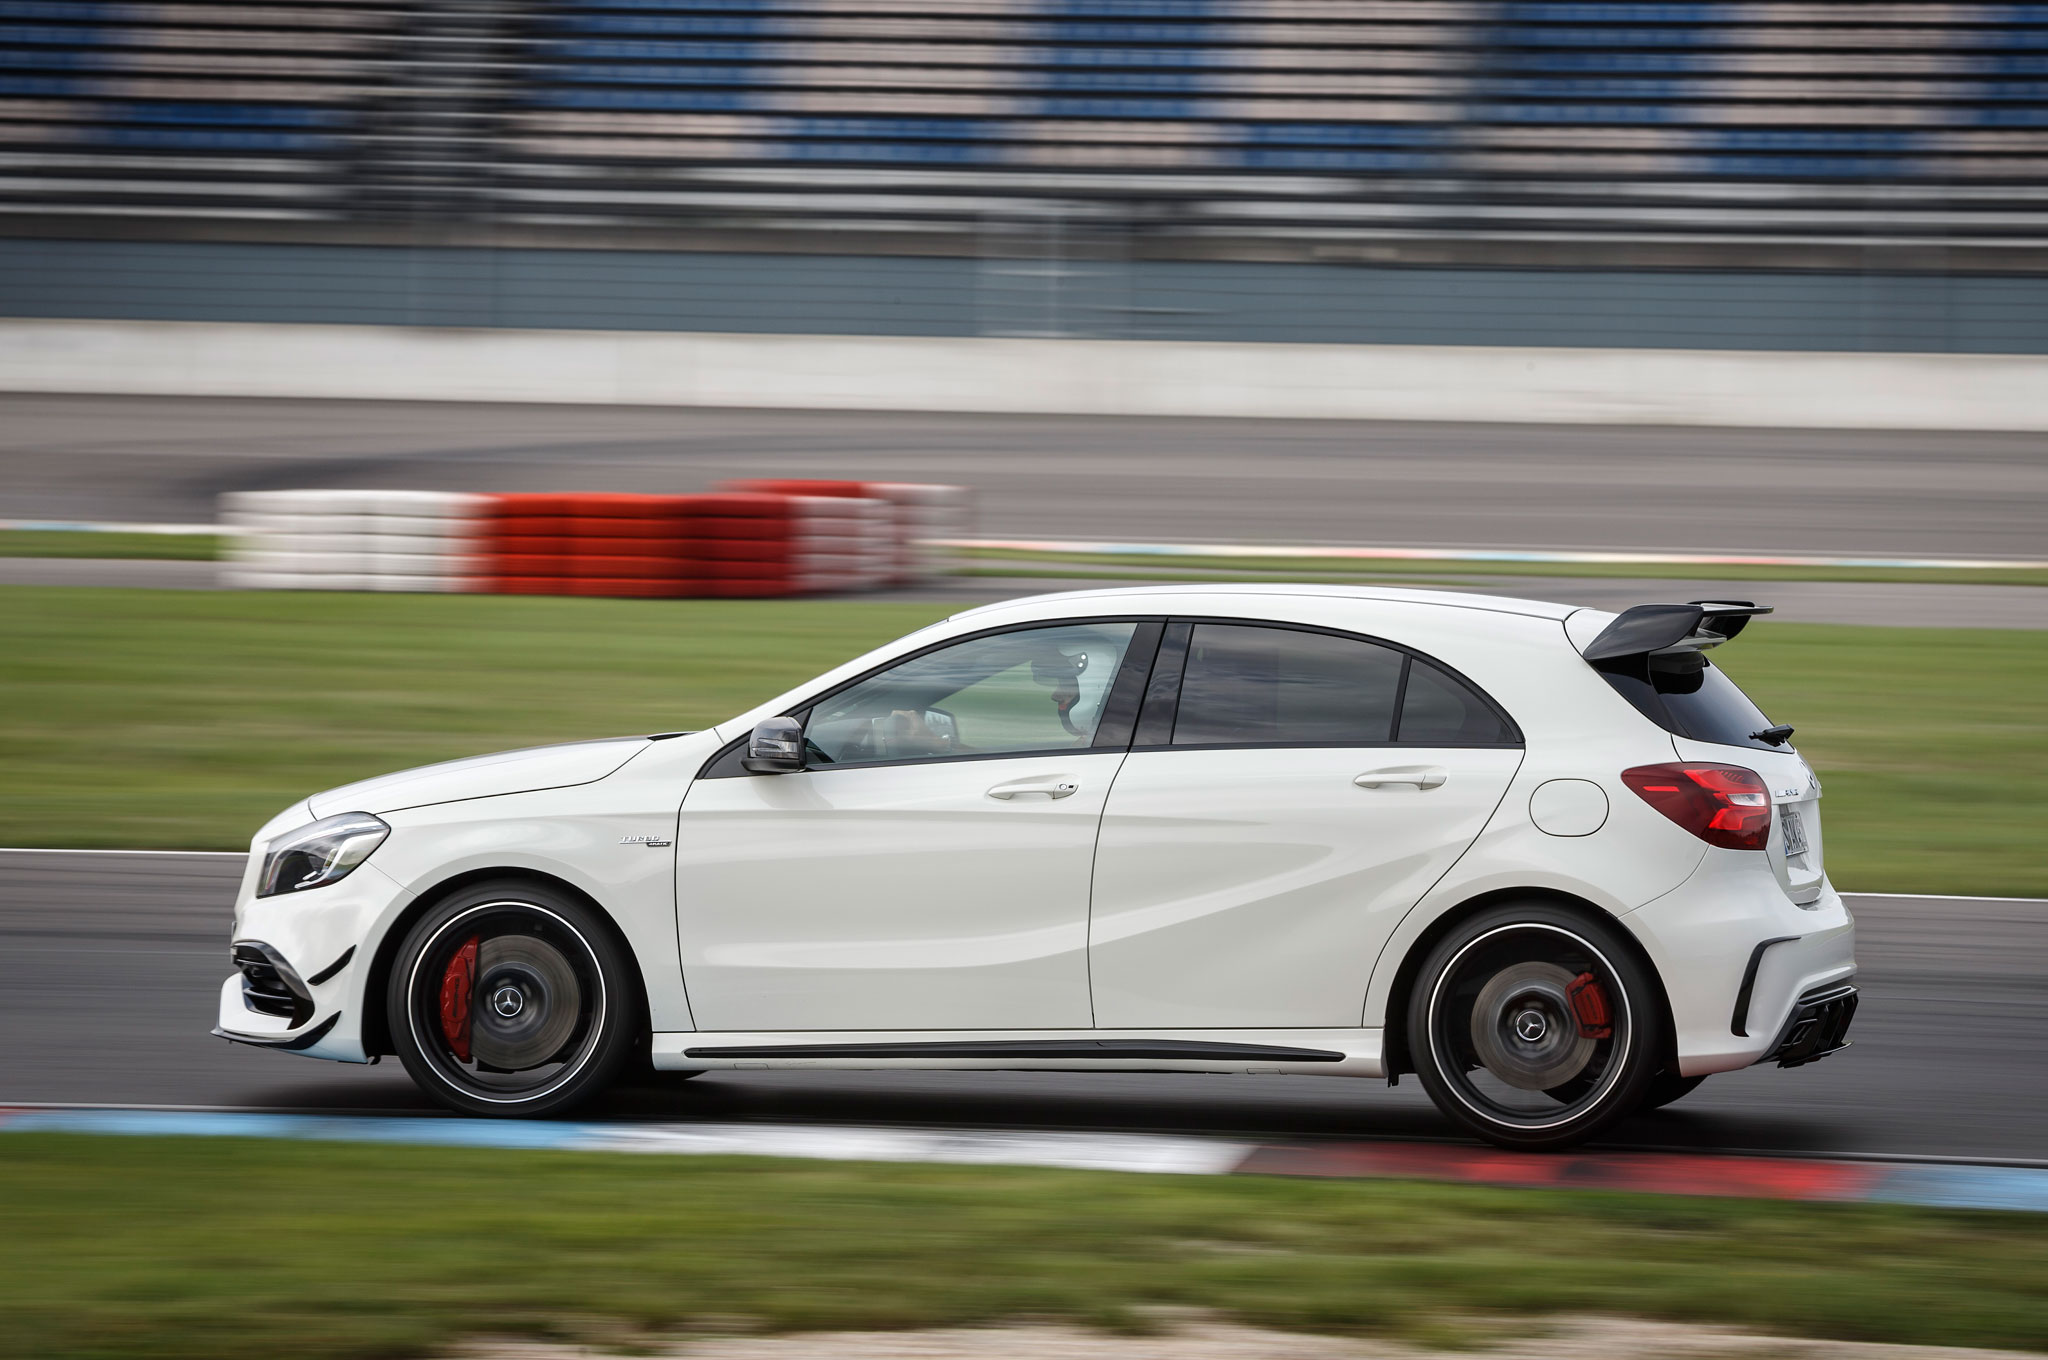 http://st.automobilemag.com/uploads/sites/11/2015/09/2016-Mercedes-AMG-A45-4Matic-side-profile-in-motion-01.jpg